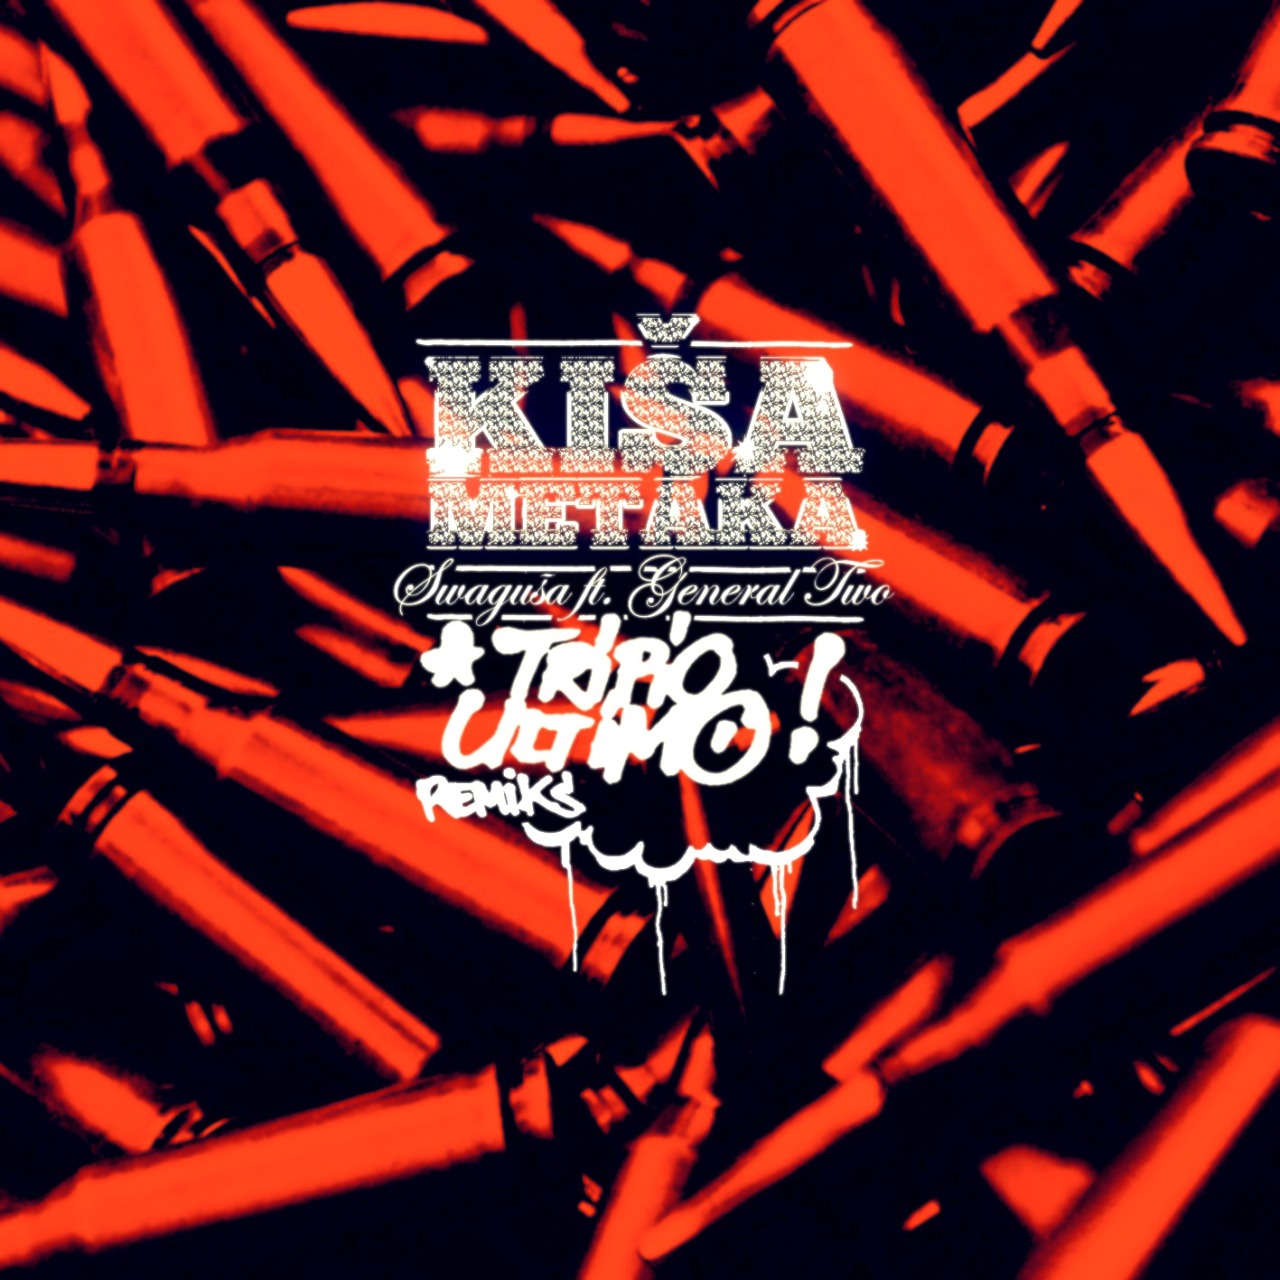 Kiša Metaka - Swaguša ft. General Two (Tripio Ultimo RMX) https://soundcloud.com/tripio-ultimo/ki-a-metaka-swagu-a-ft-general